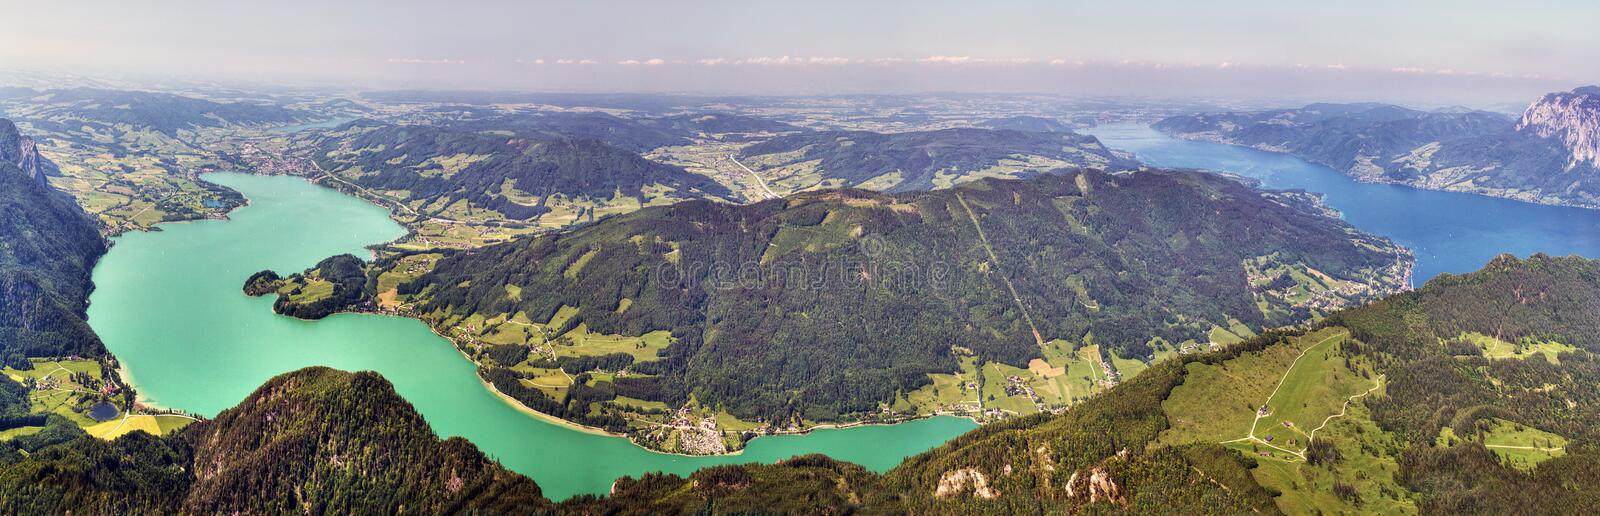 Mountains and Lakes - Panoramic view of the Alpine Glacial Lakes Mondsee and Attersee royalty free stock photography